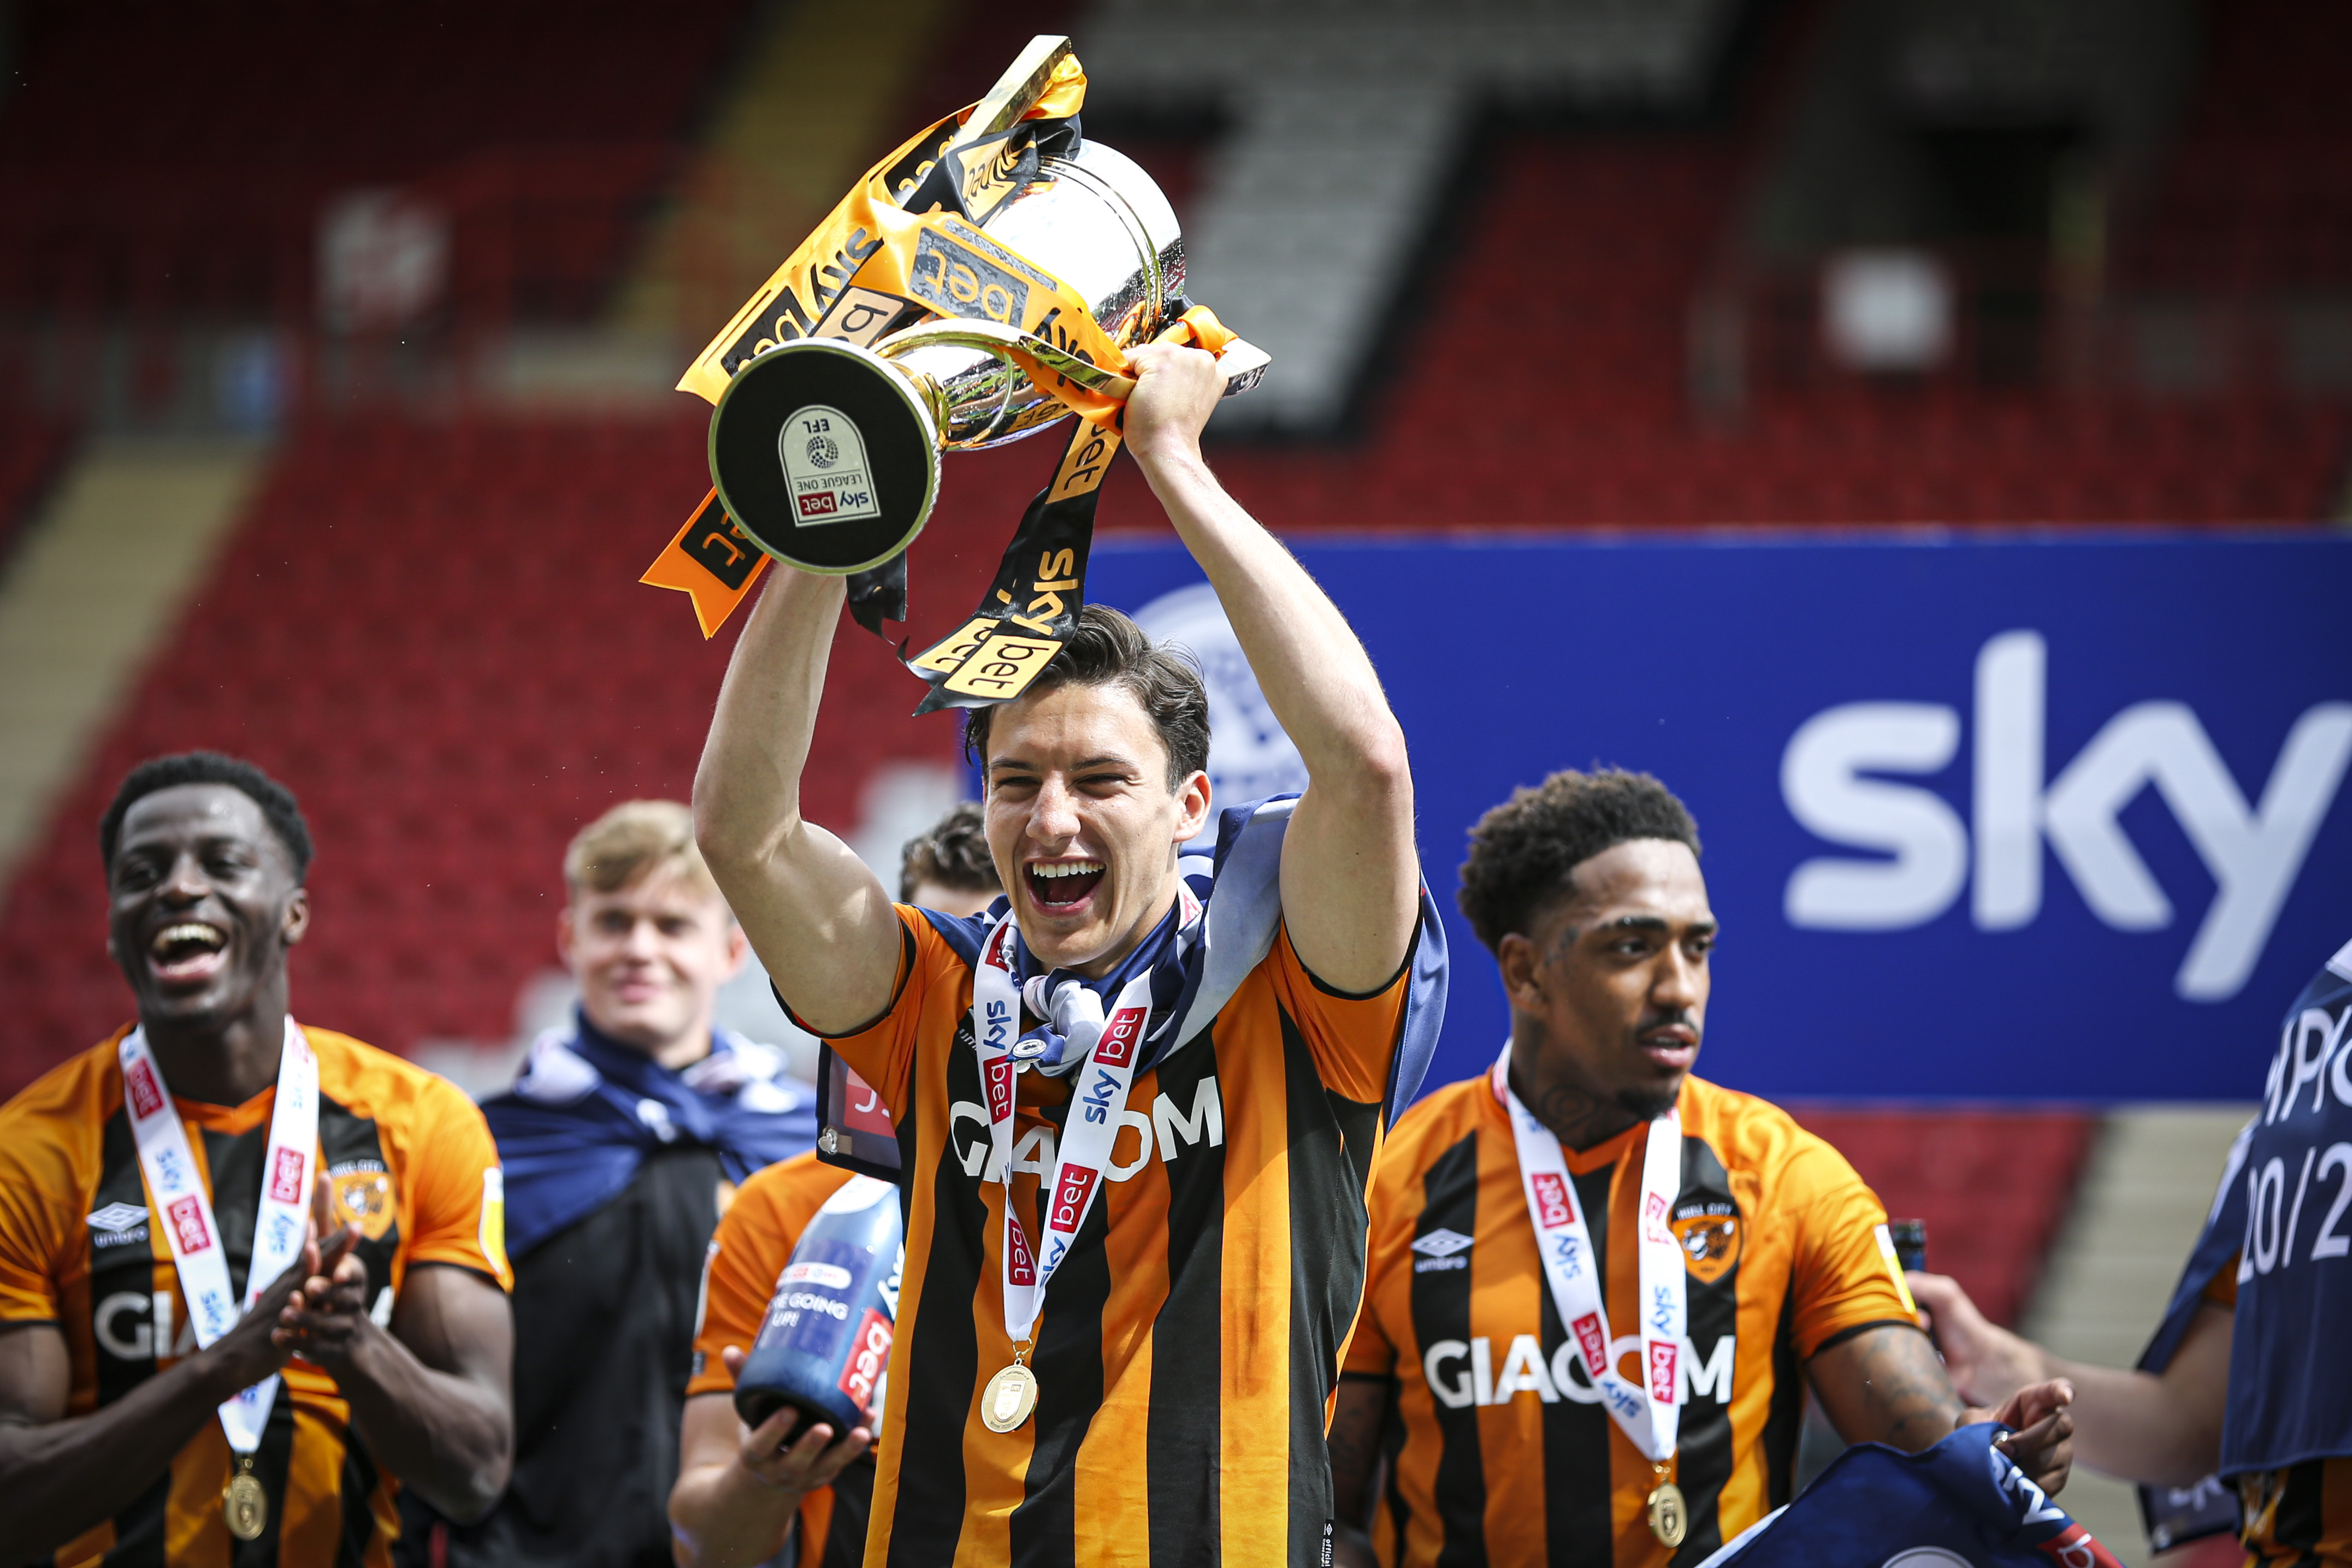 <p>Hull City trophy celebrations  during the Sky Bet League 1 match between Charlton Athletic and Hull City at The Valley, London, UK on 9th May 2021. (Photo by Tom West/MI News/NurPhoto via Getty Images)</p>